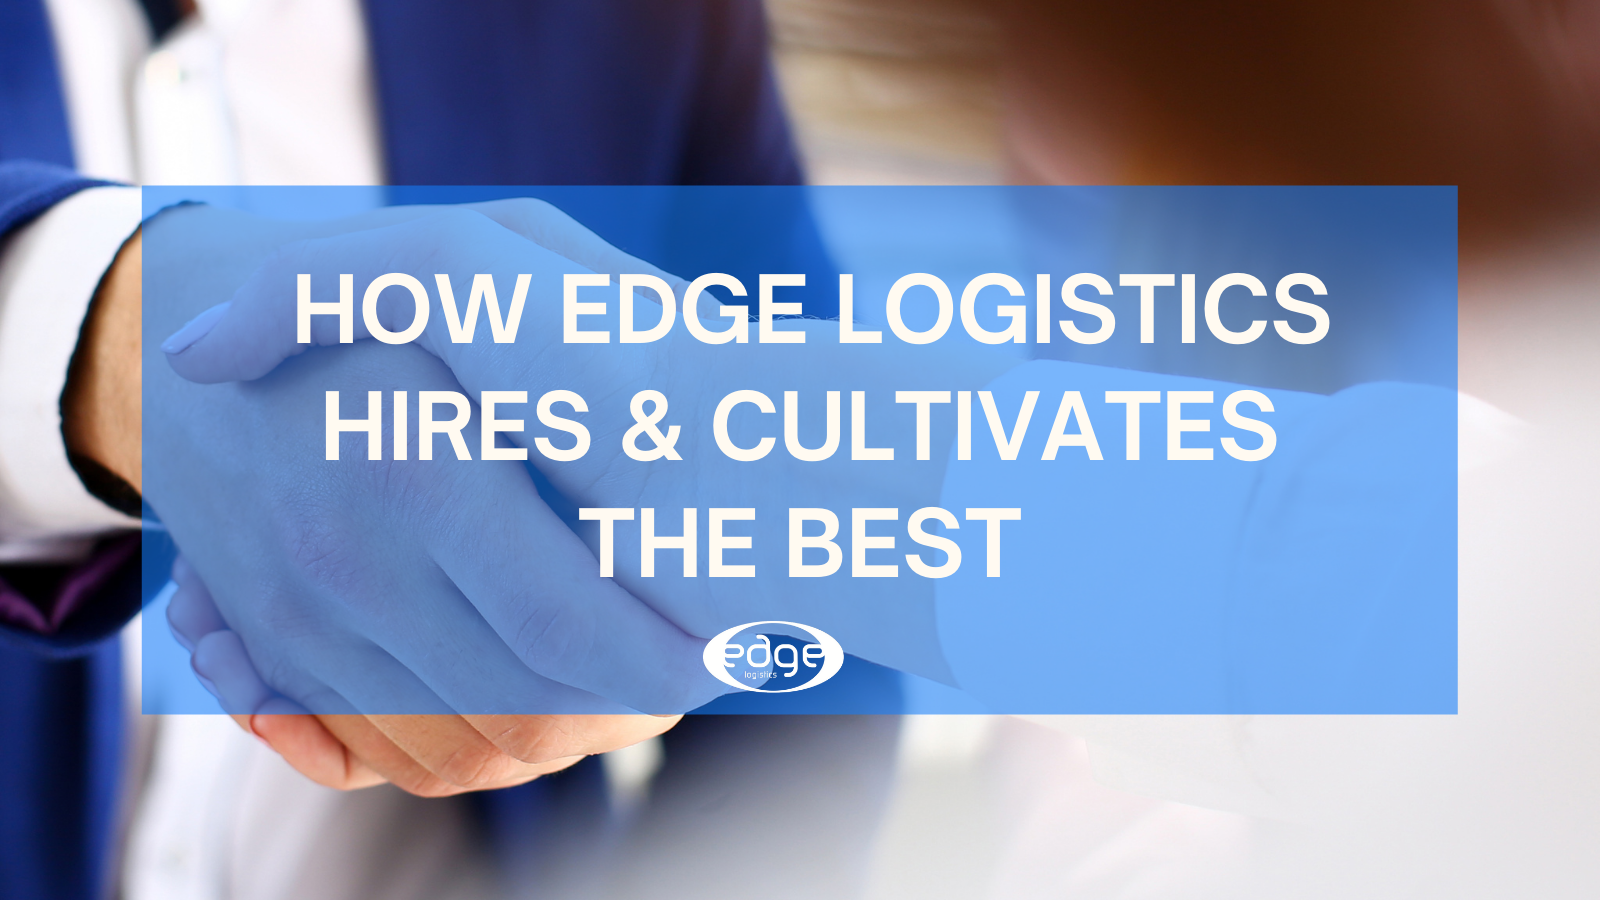 Freight Broker Companies Hiring: How Edge Logistics Hires & Cultivates the Best